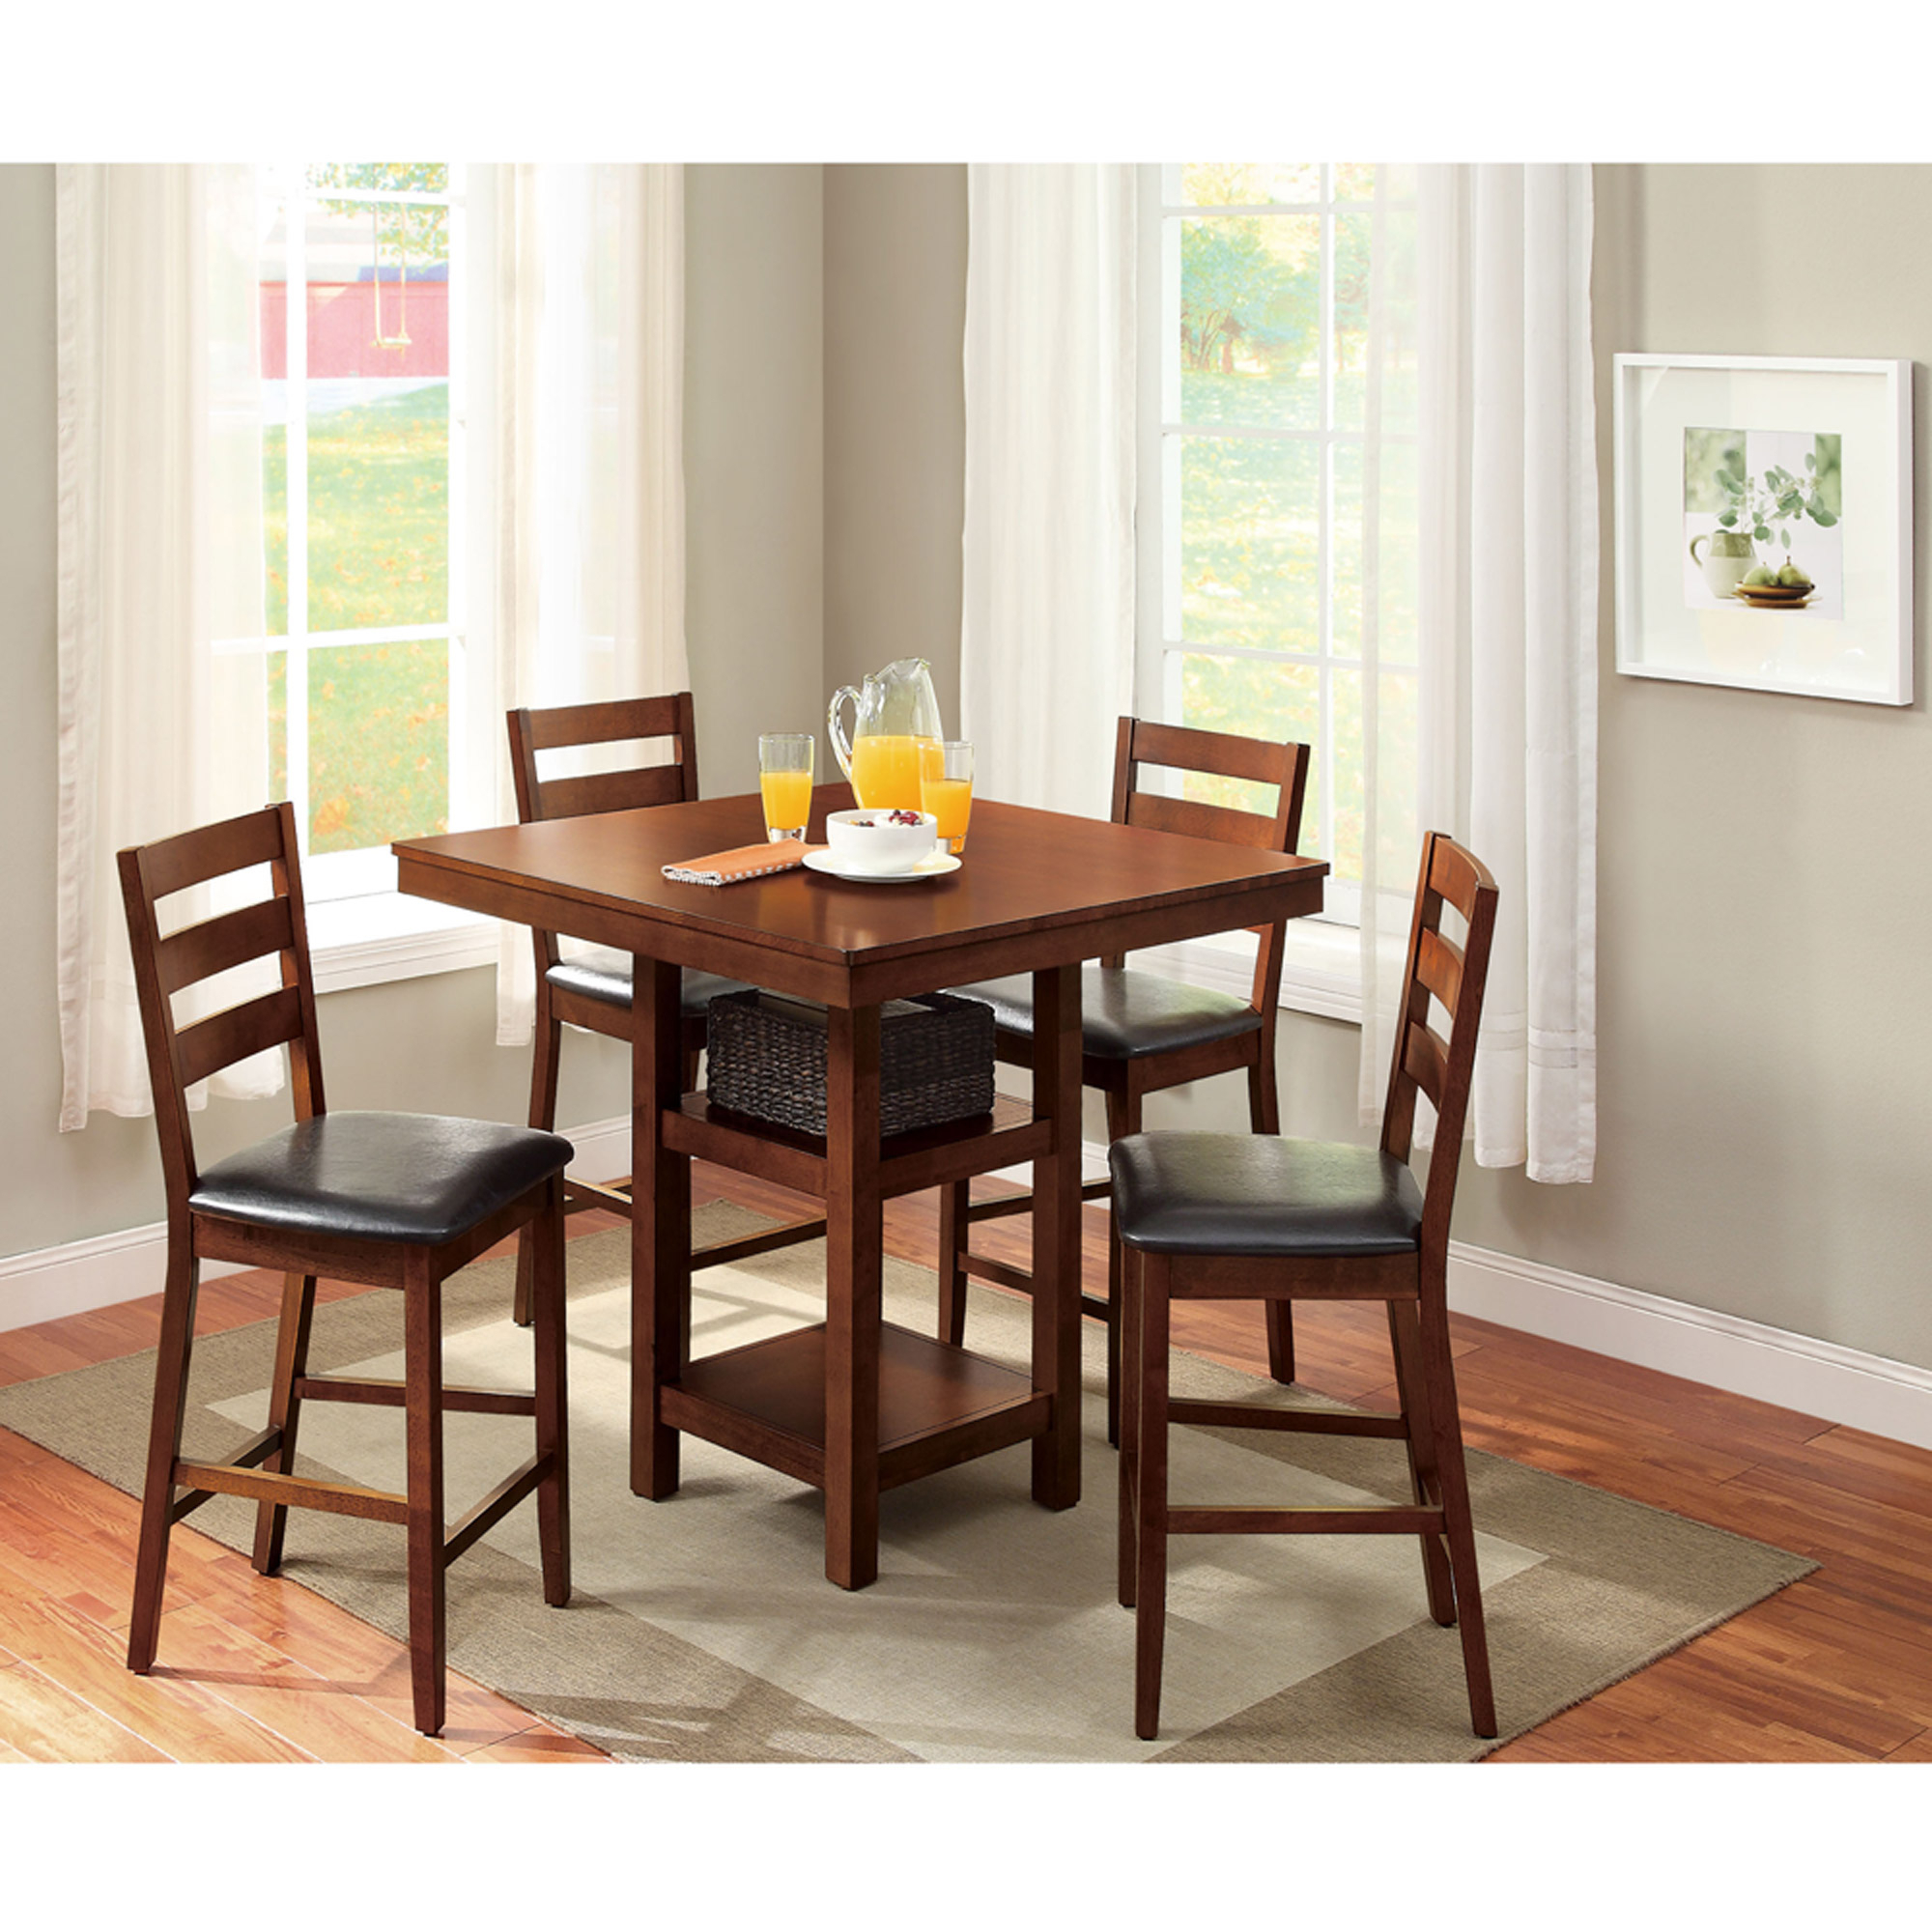 Well Known Metropolitan 3 Piece Dining Set, Multiple Finishes Within Rossiter 3 Piece Dining Sets (View 18 of 20)